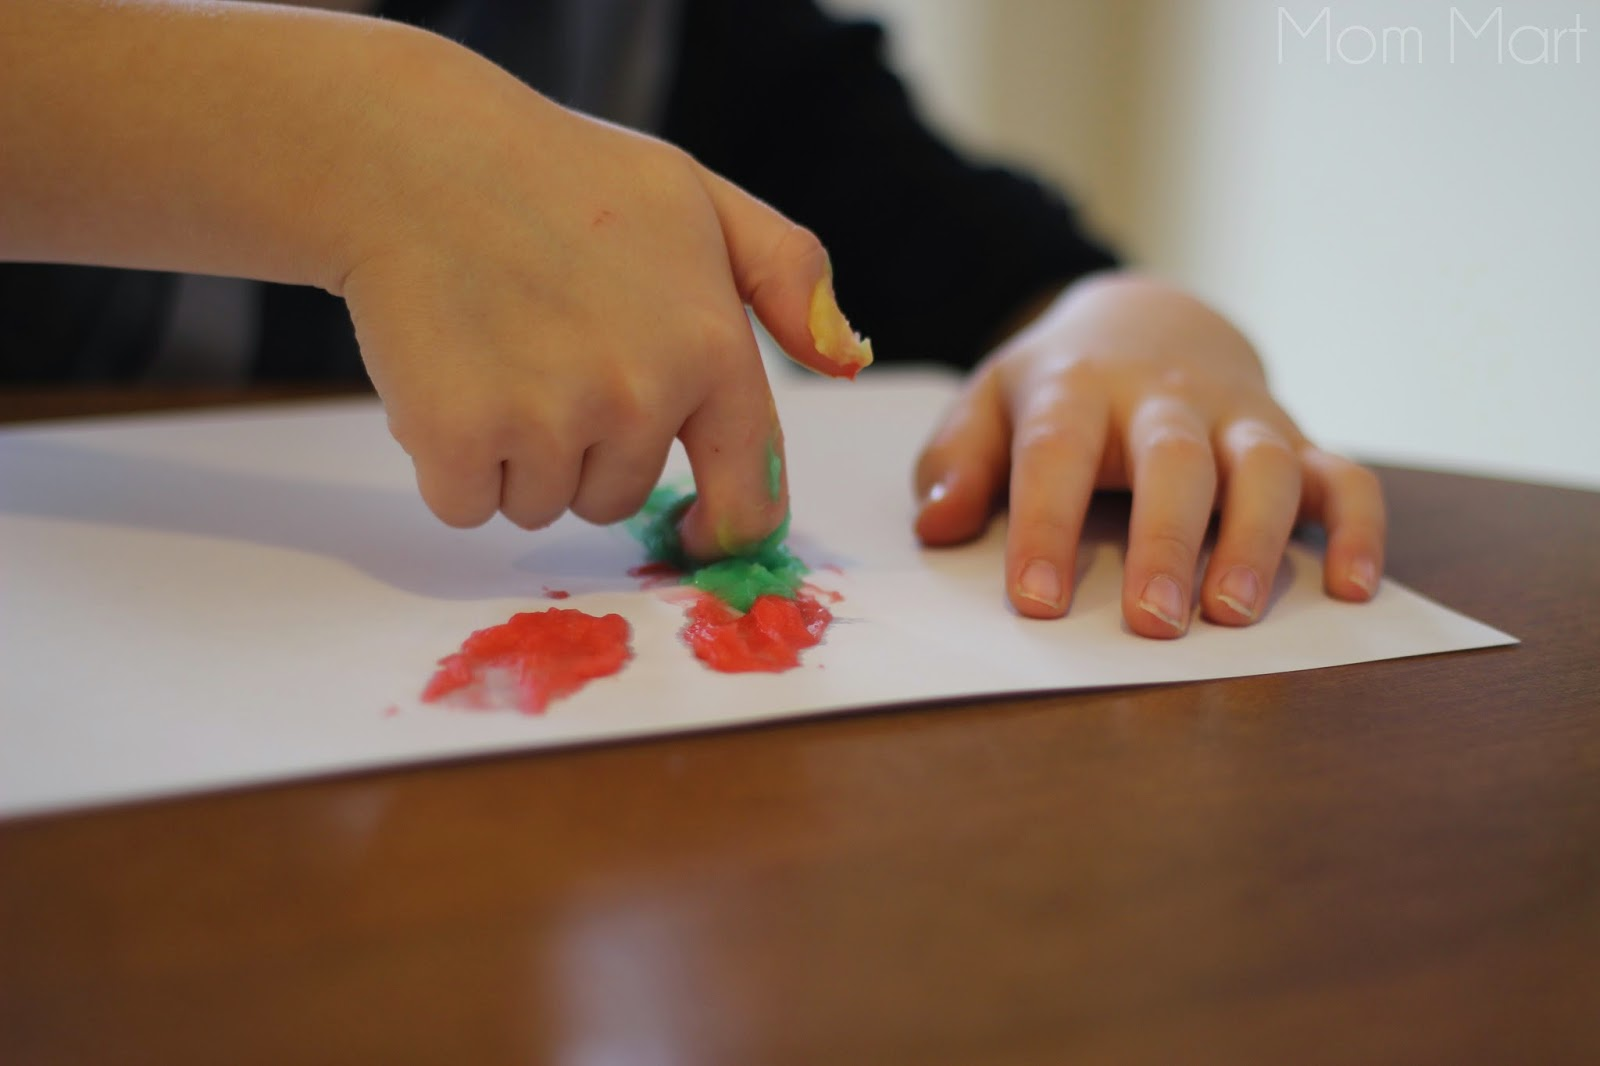 DIY Homemade Finger Paint Recipe - finger painting recipe to make with kids